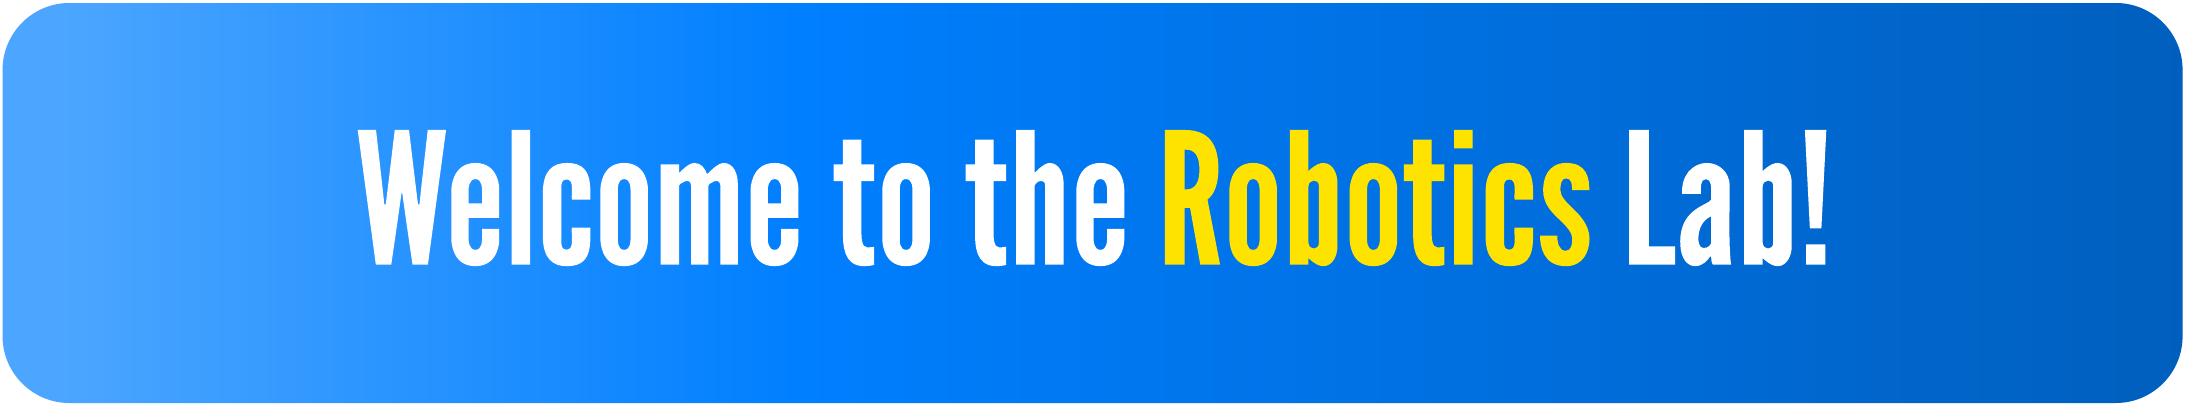 Welcome to the Robotics Lab!